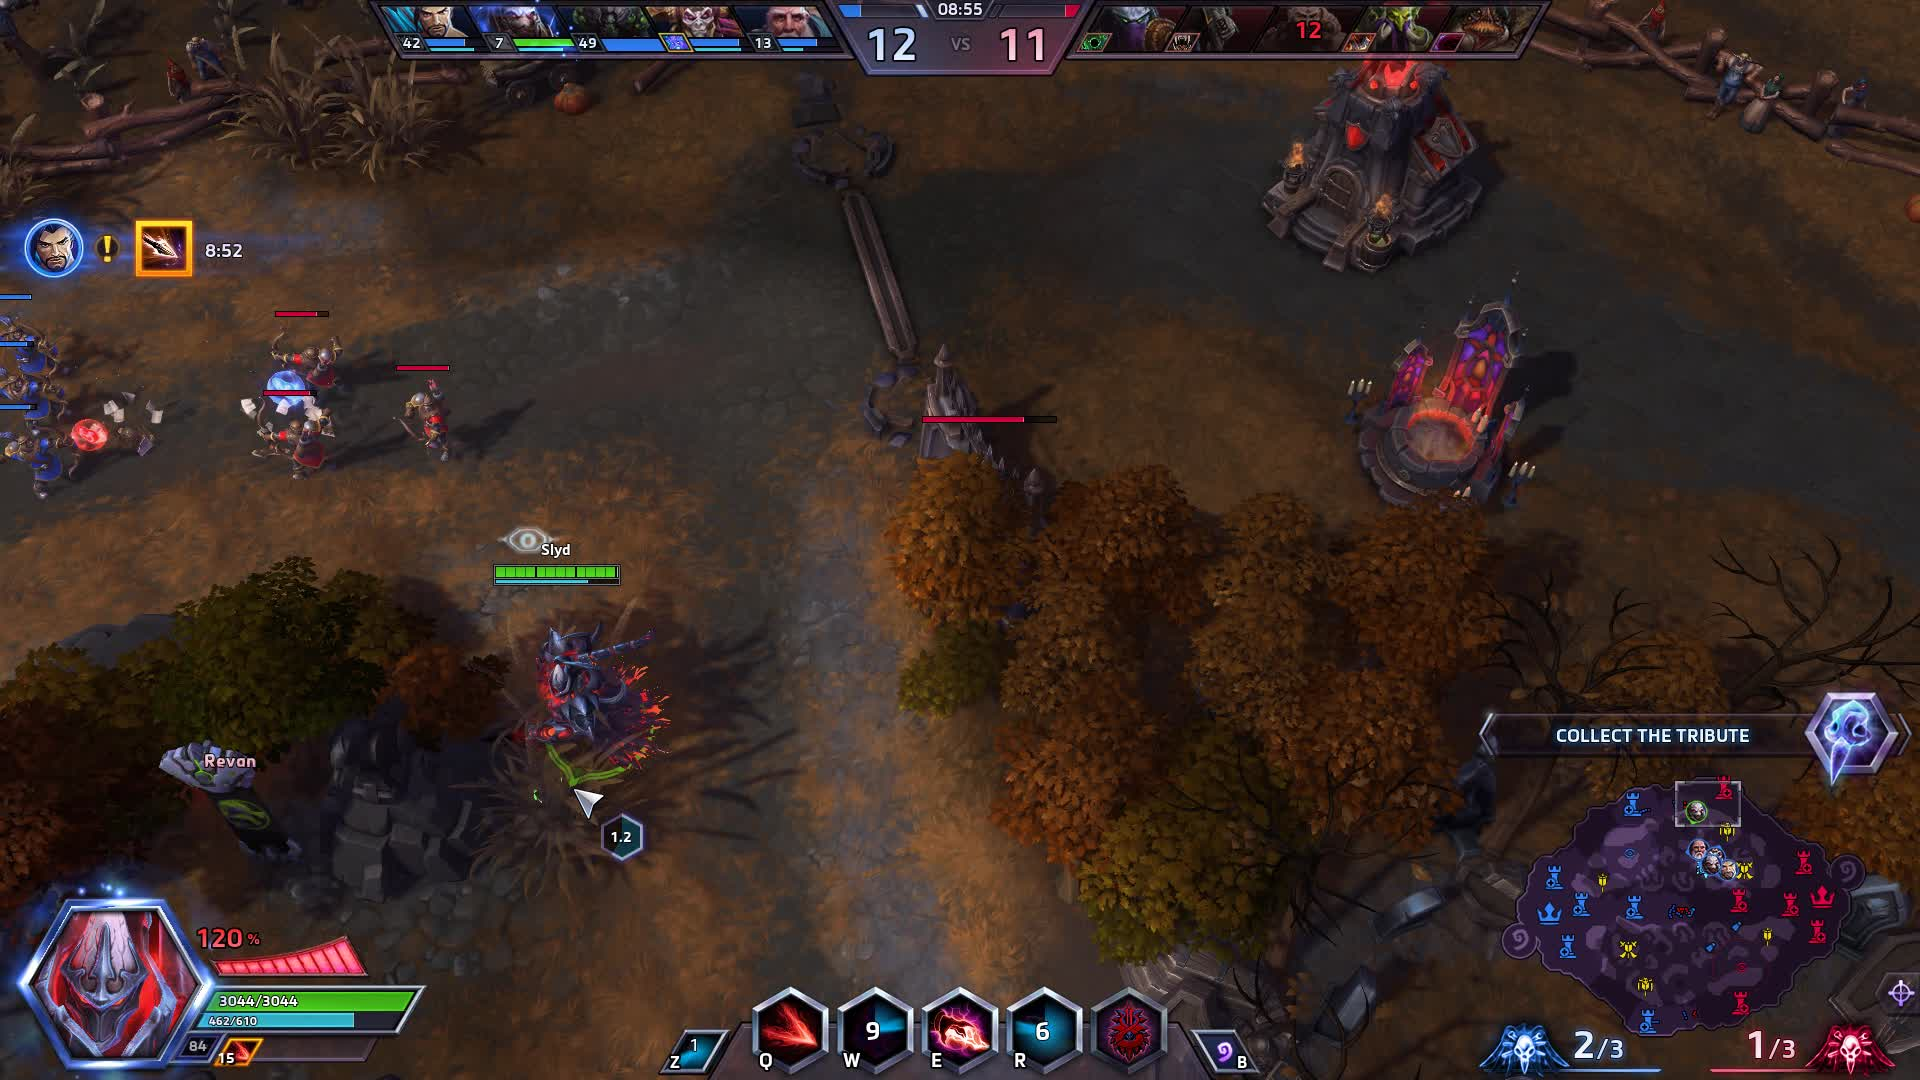 heroesofthestorm, vlc-record-2018-07-31-21h59m07s-Heroes of the Storm 2018.07.30 - 23.54.50.08.DVR.mp4- GIFs